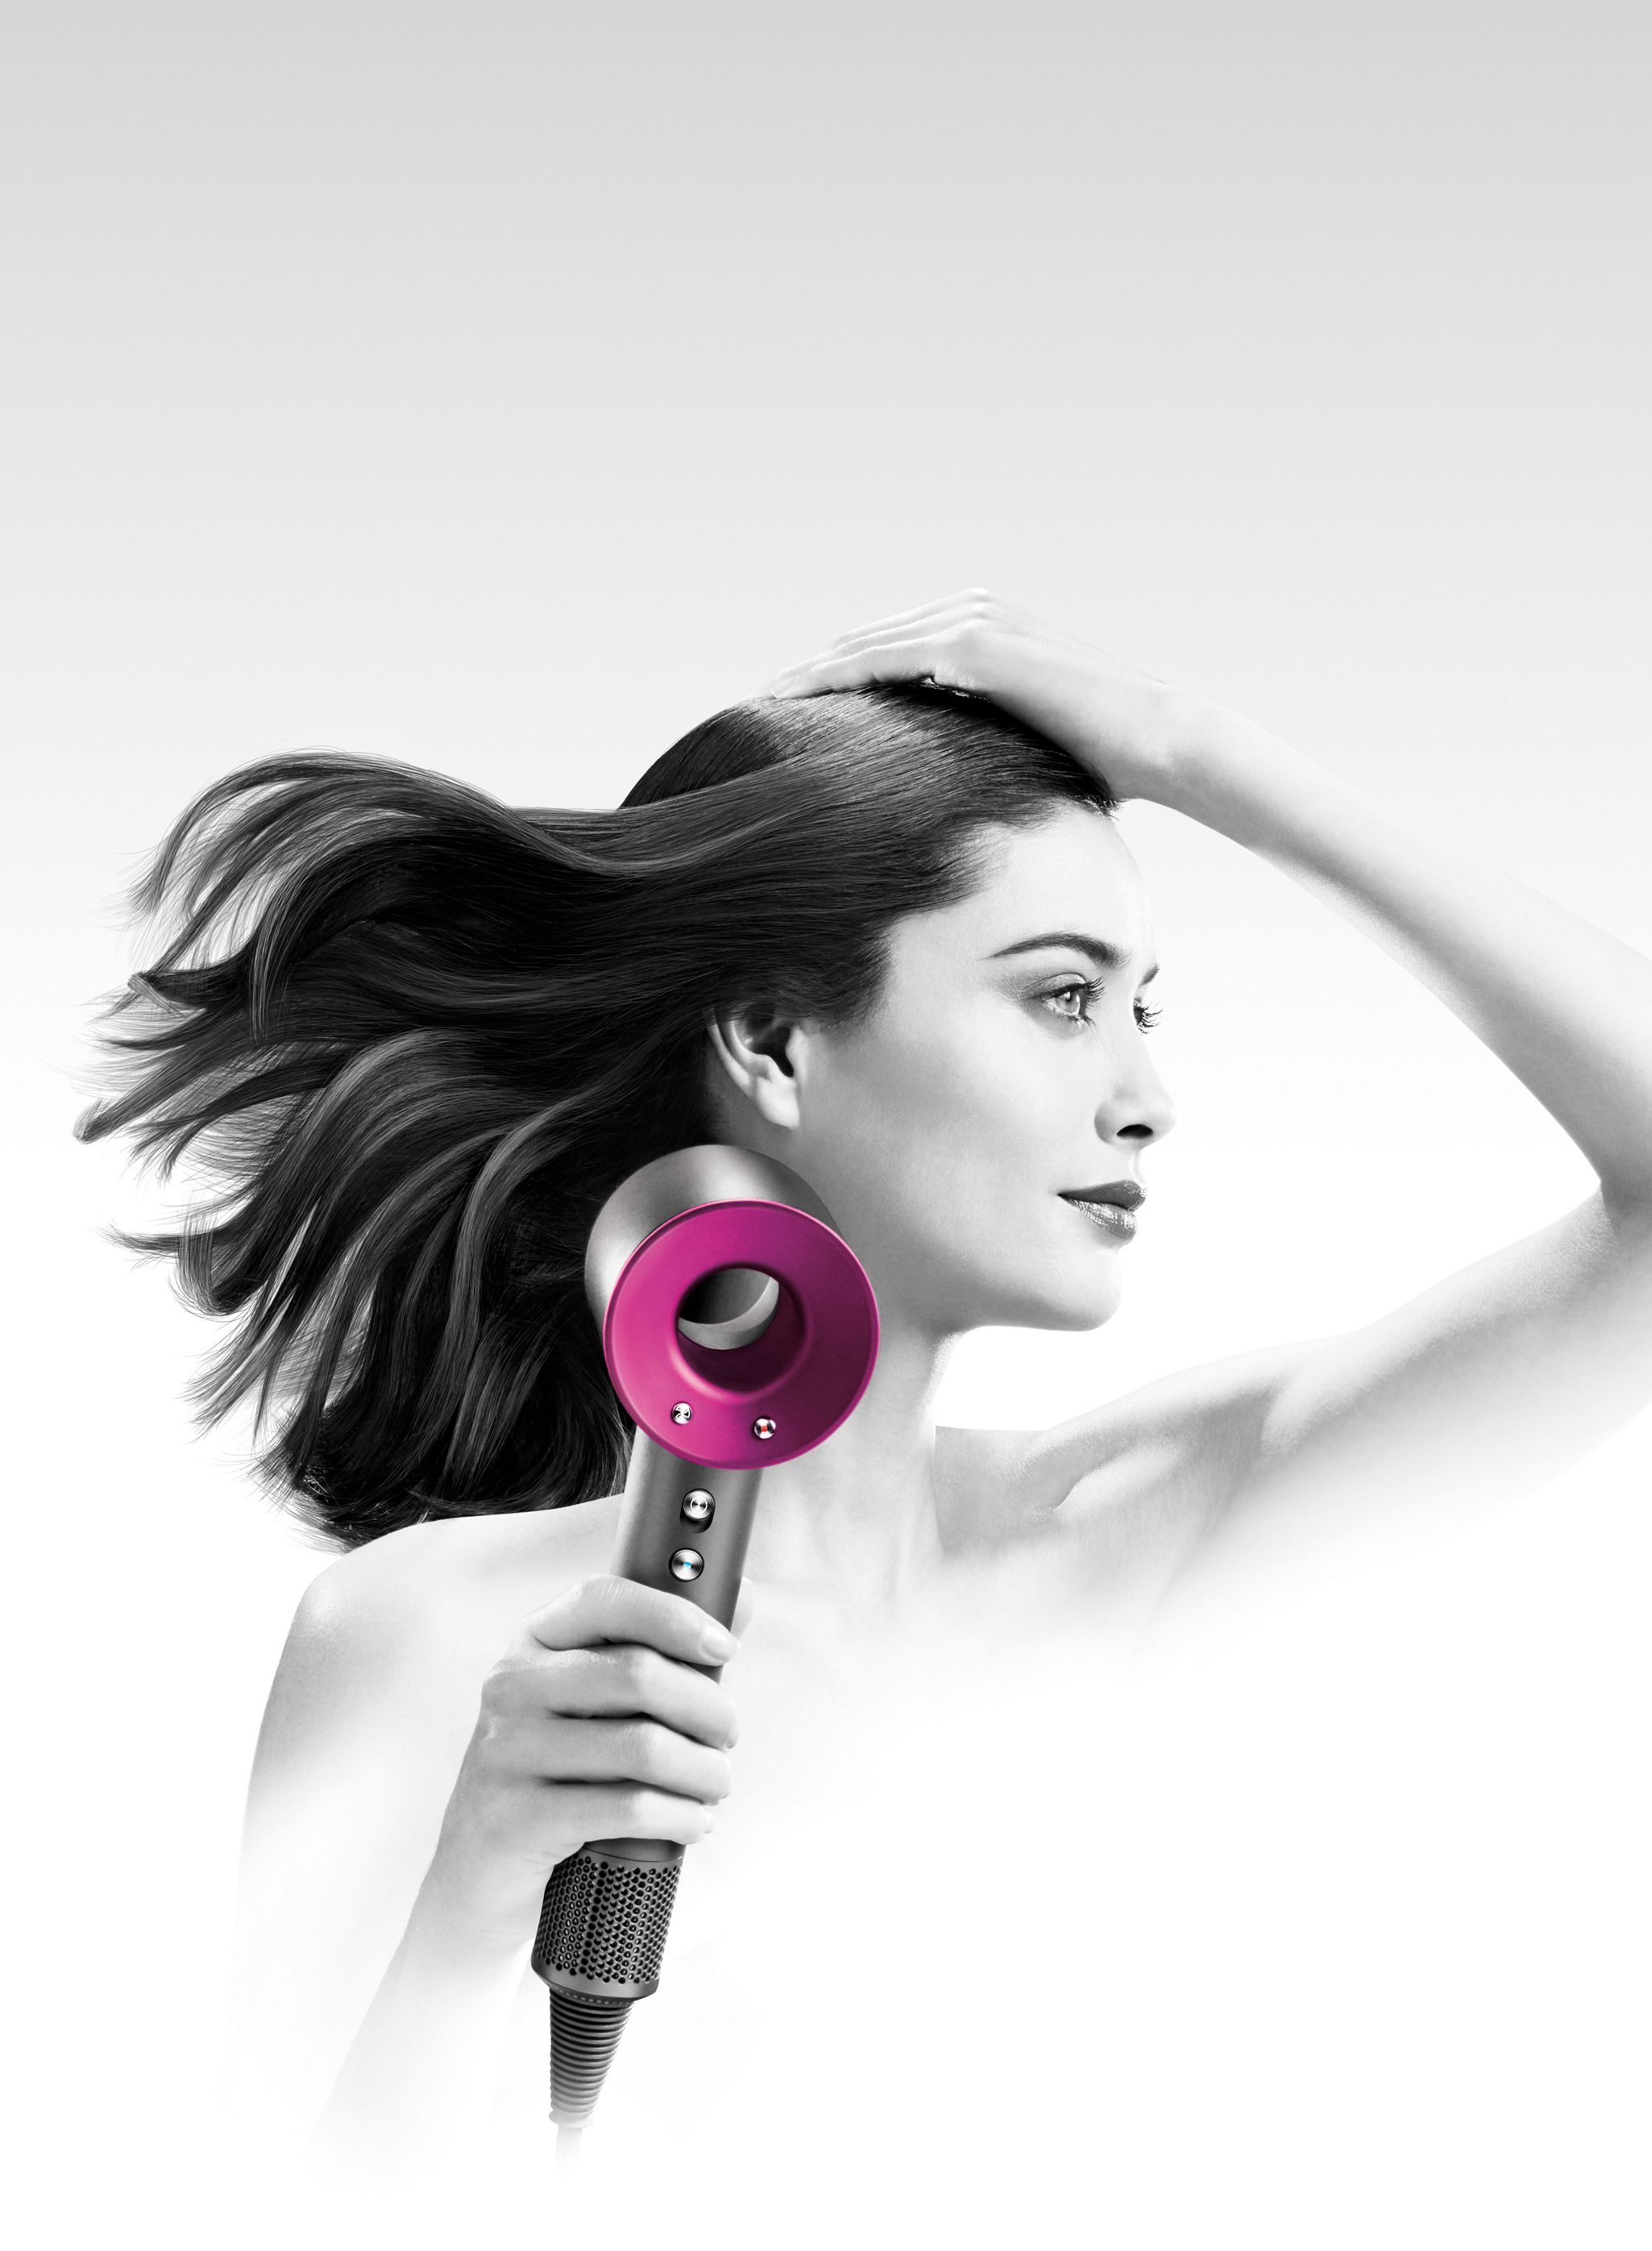 Model with Dyson Supersonic™ hair dryer Hair dryer